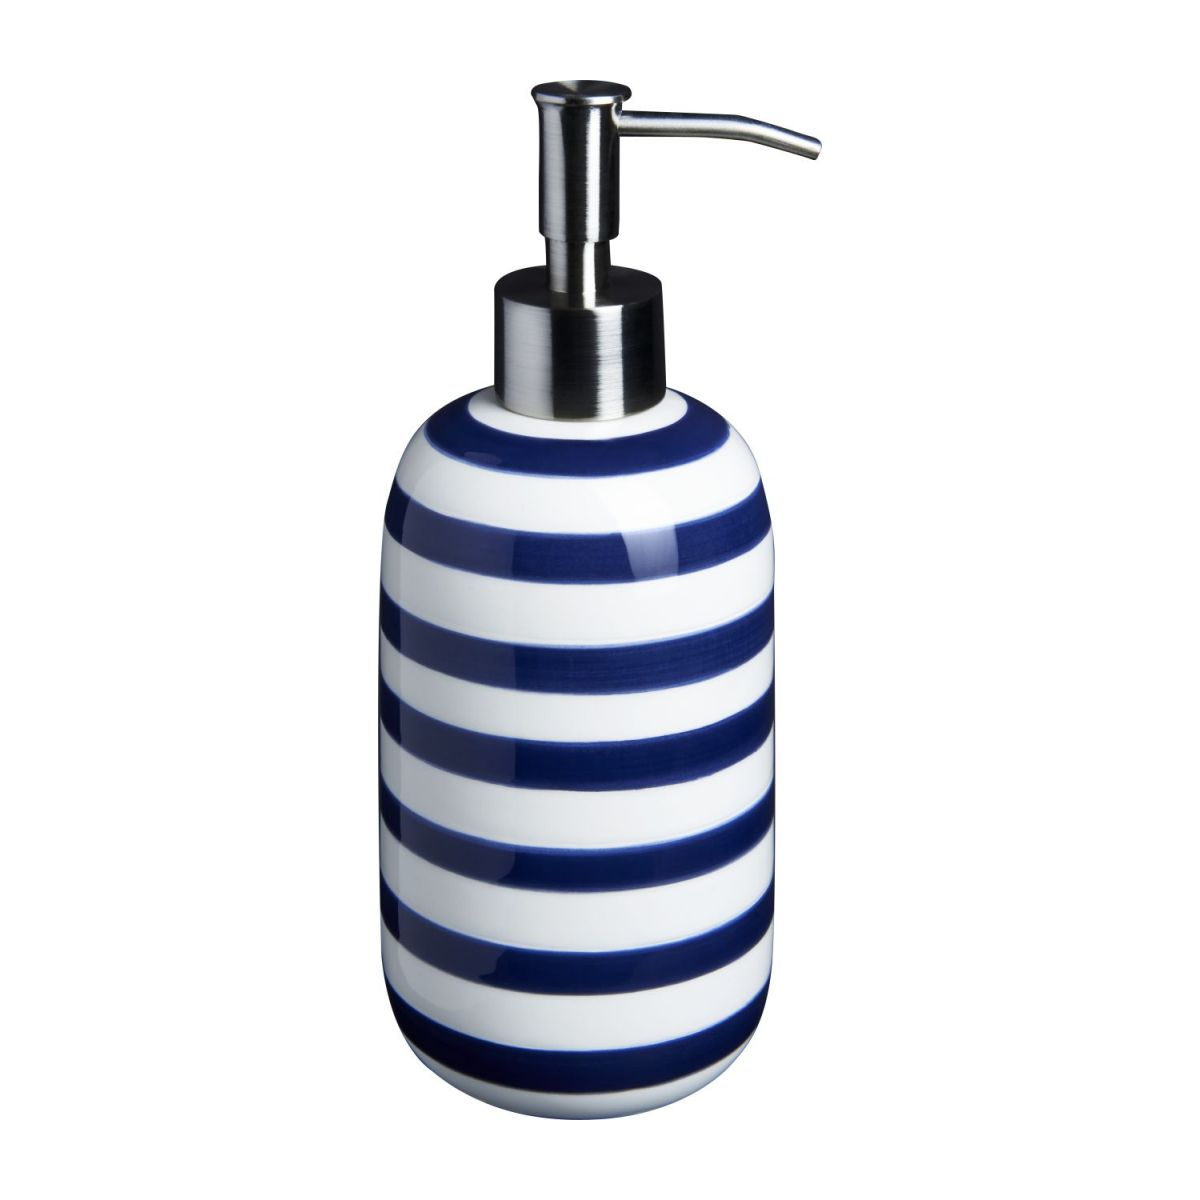 Soap dispenser n°2